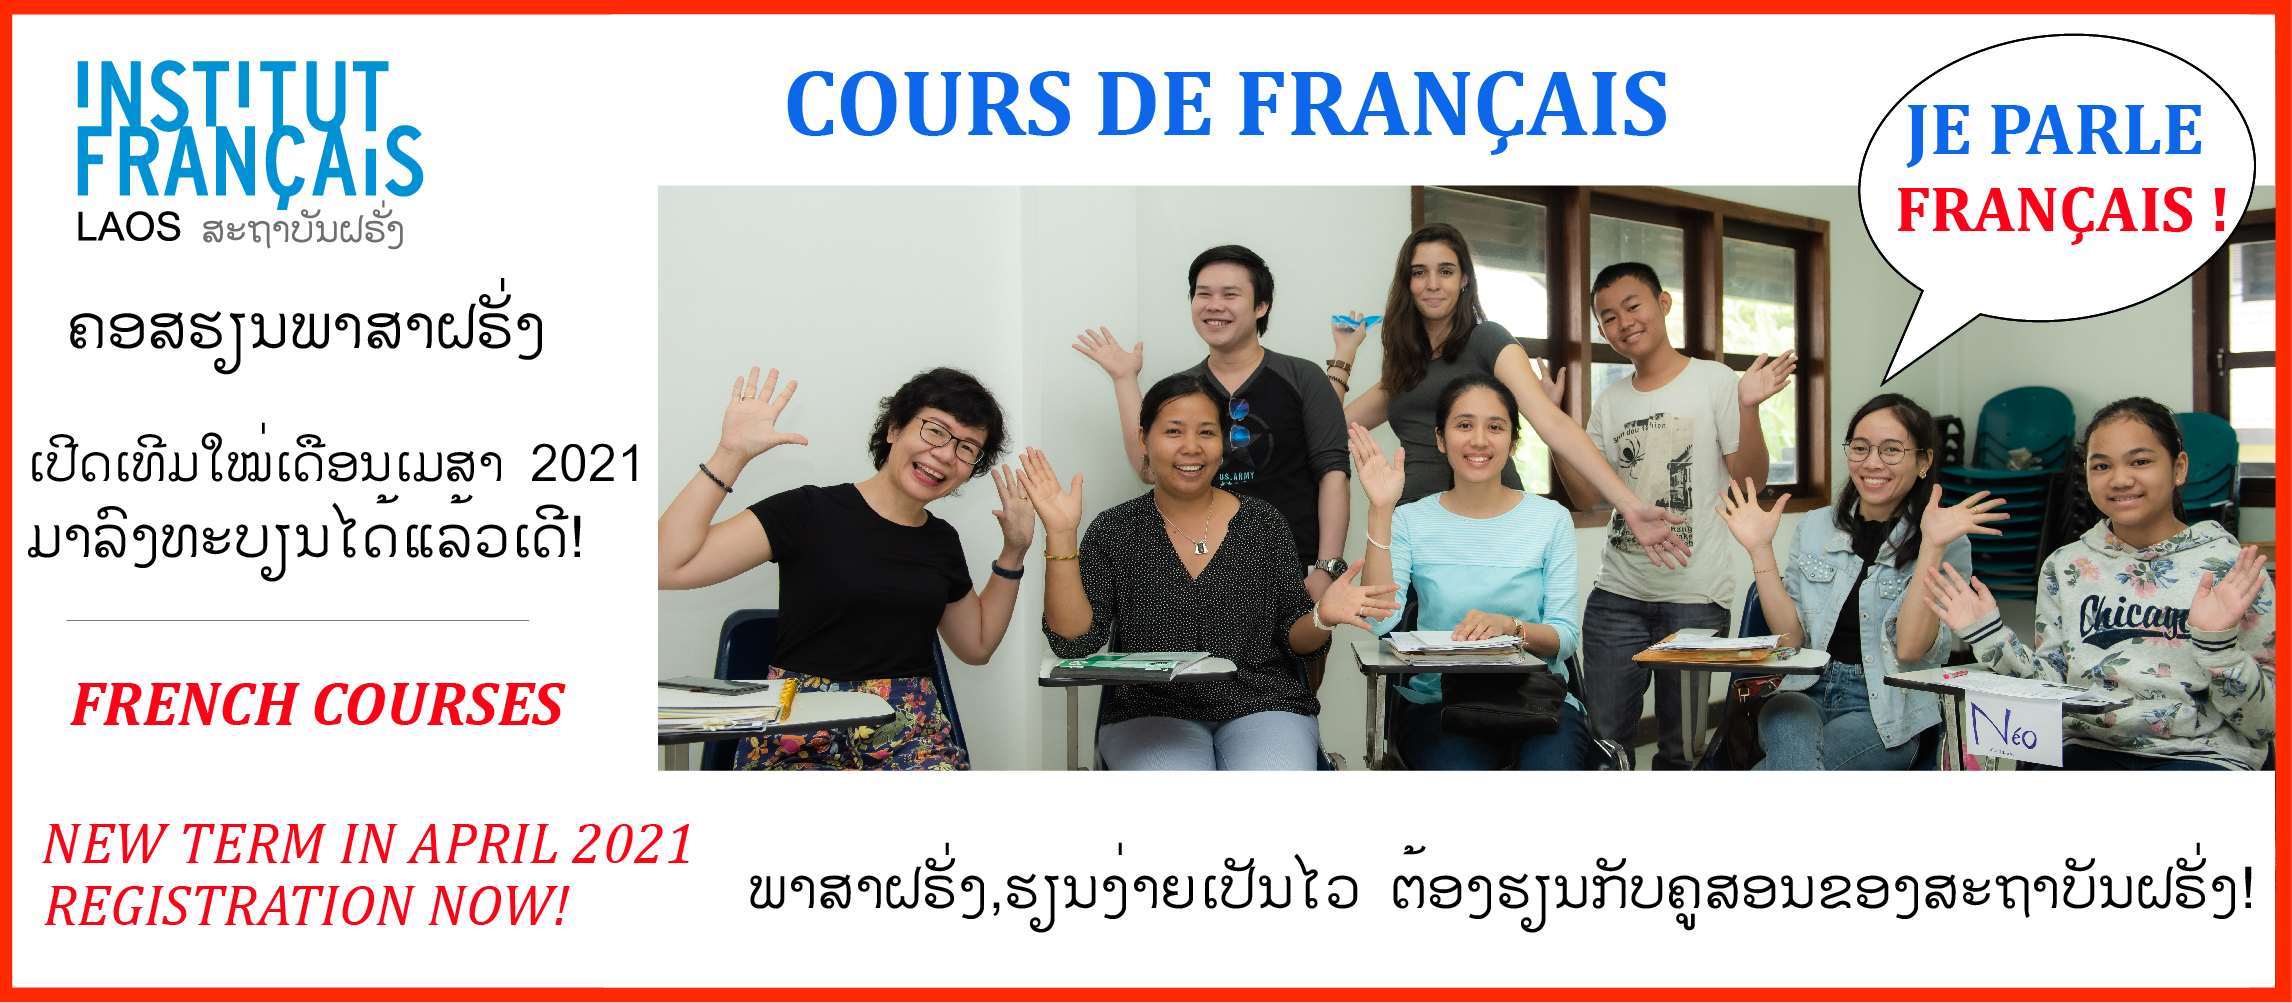 FRENCH COURSES – New Term